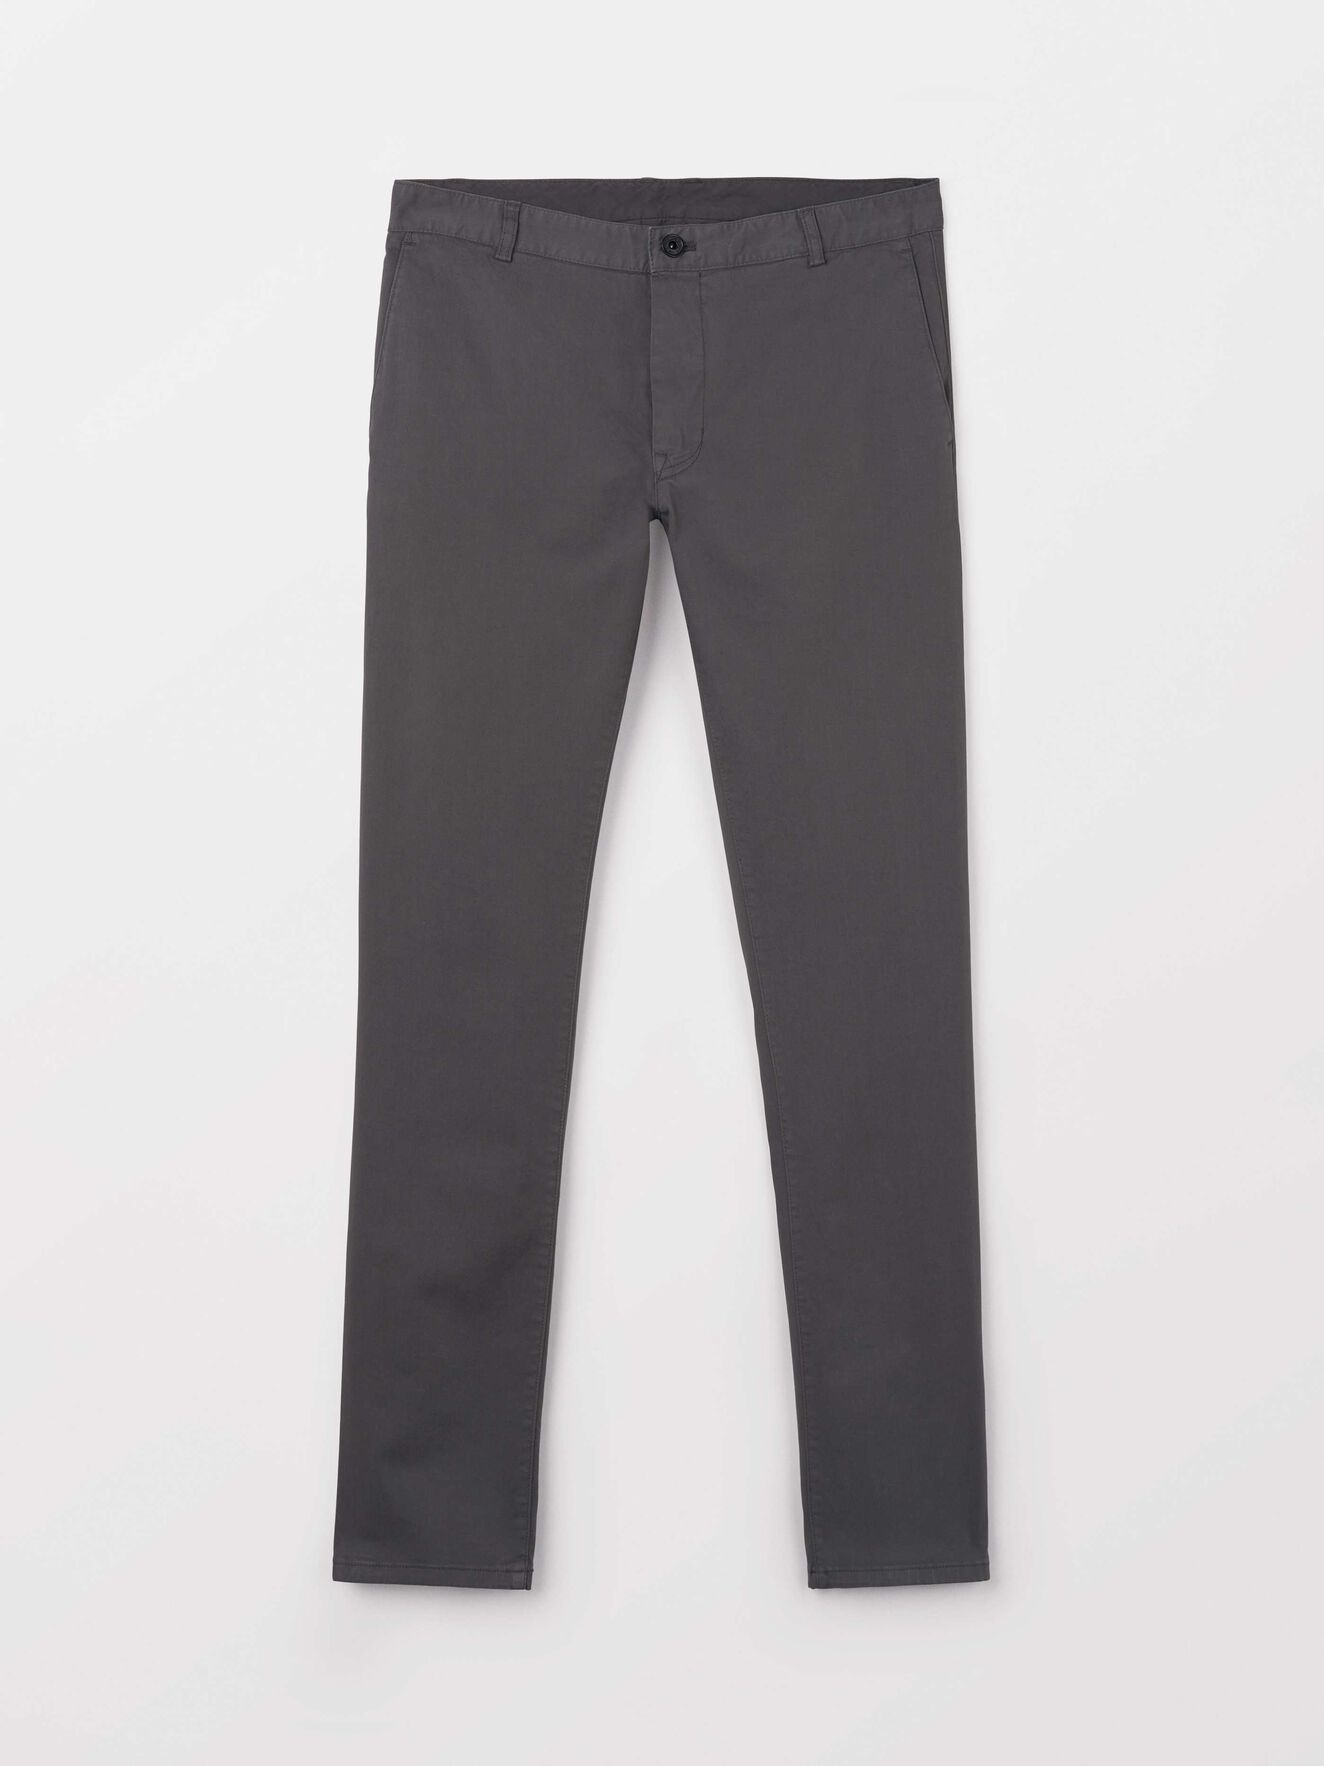 Transit Trousers in Med Grey Mel from Tiger of Sweden